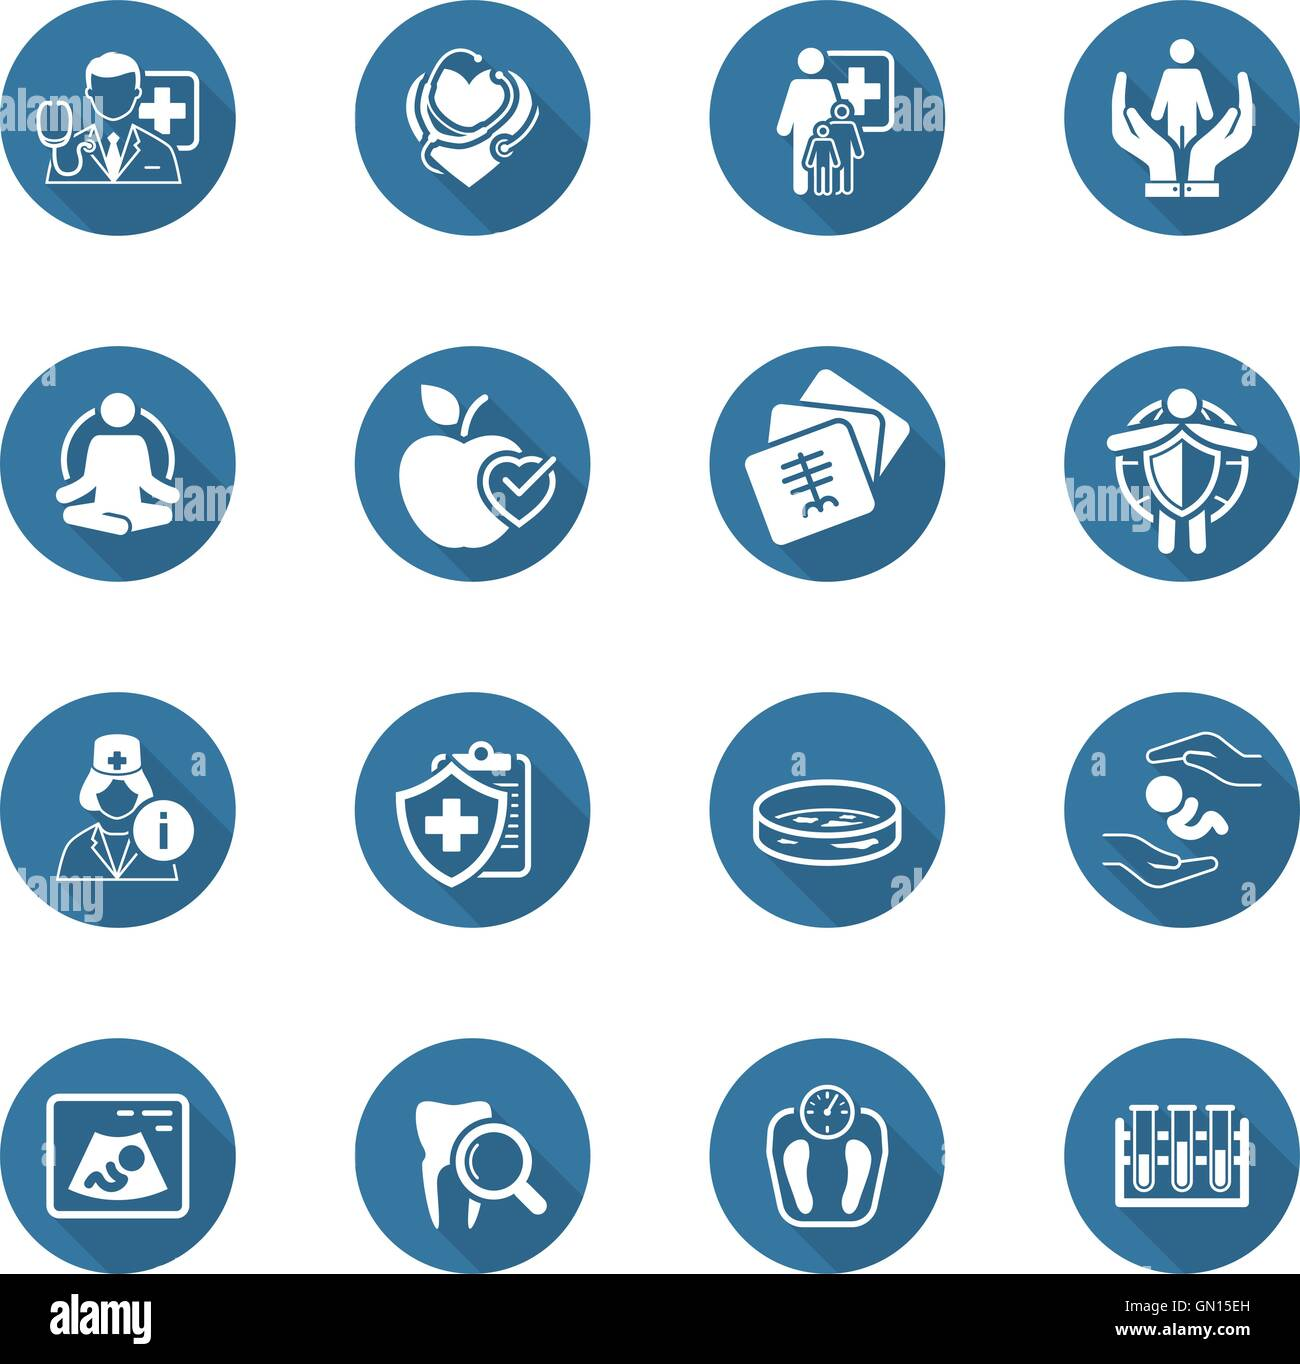 Medical and Health Care Icons Set. Flat Design. - Stock Image